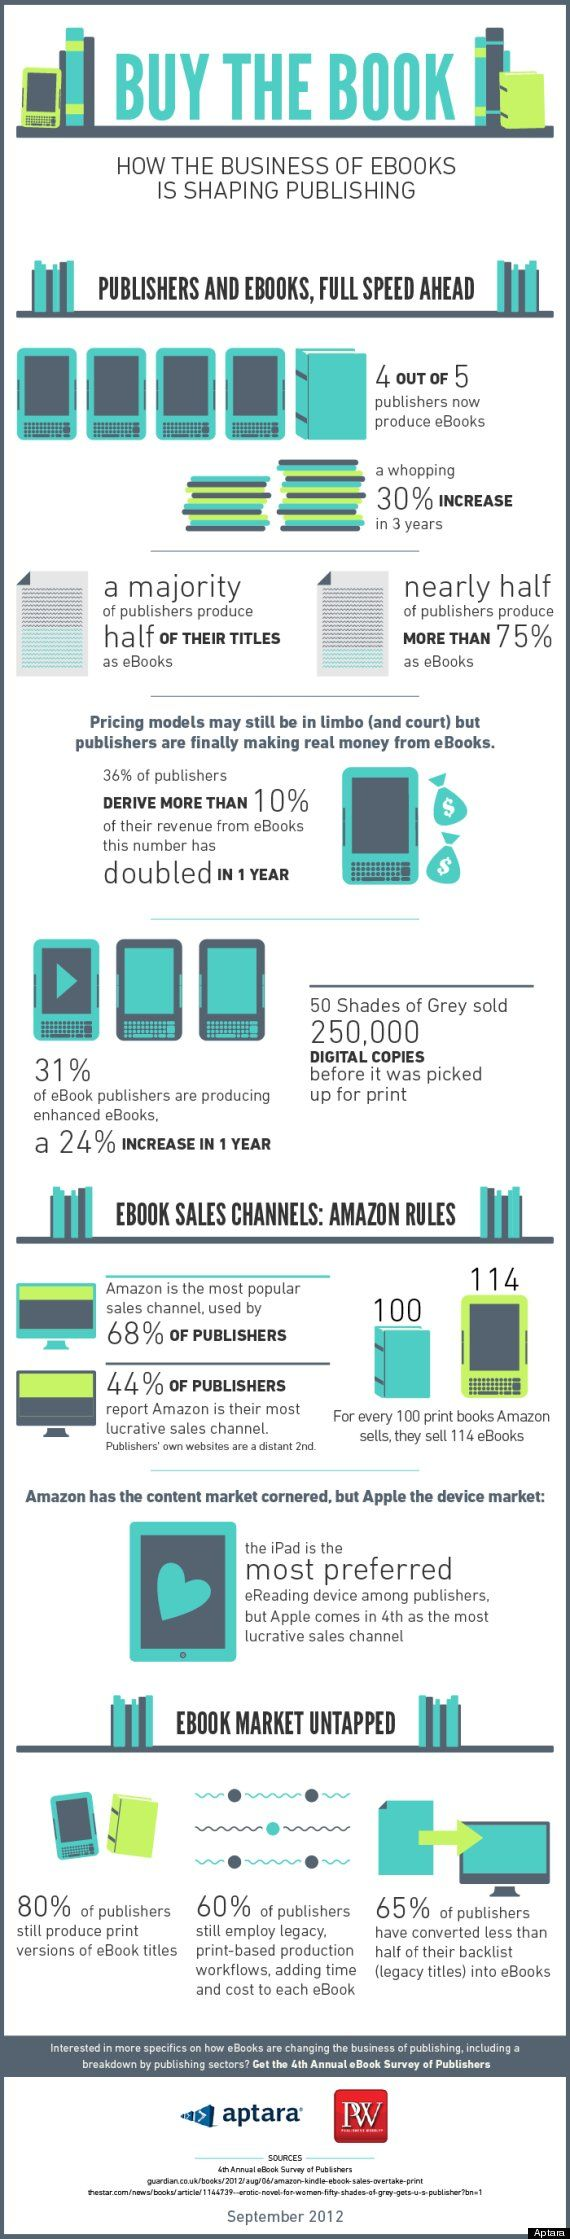 Aptaracorp Has Released Its Annual Survey Of Ebook Production Trends, And  To Mark The Event